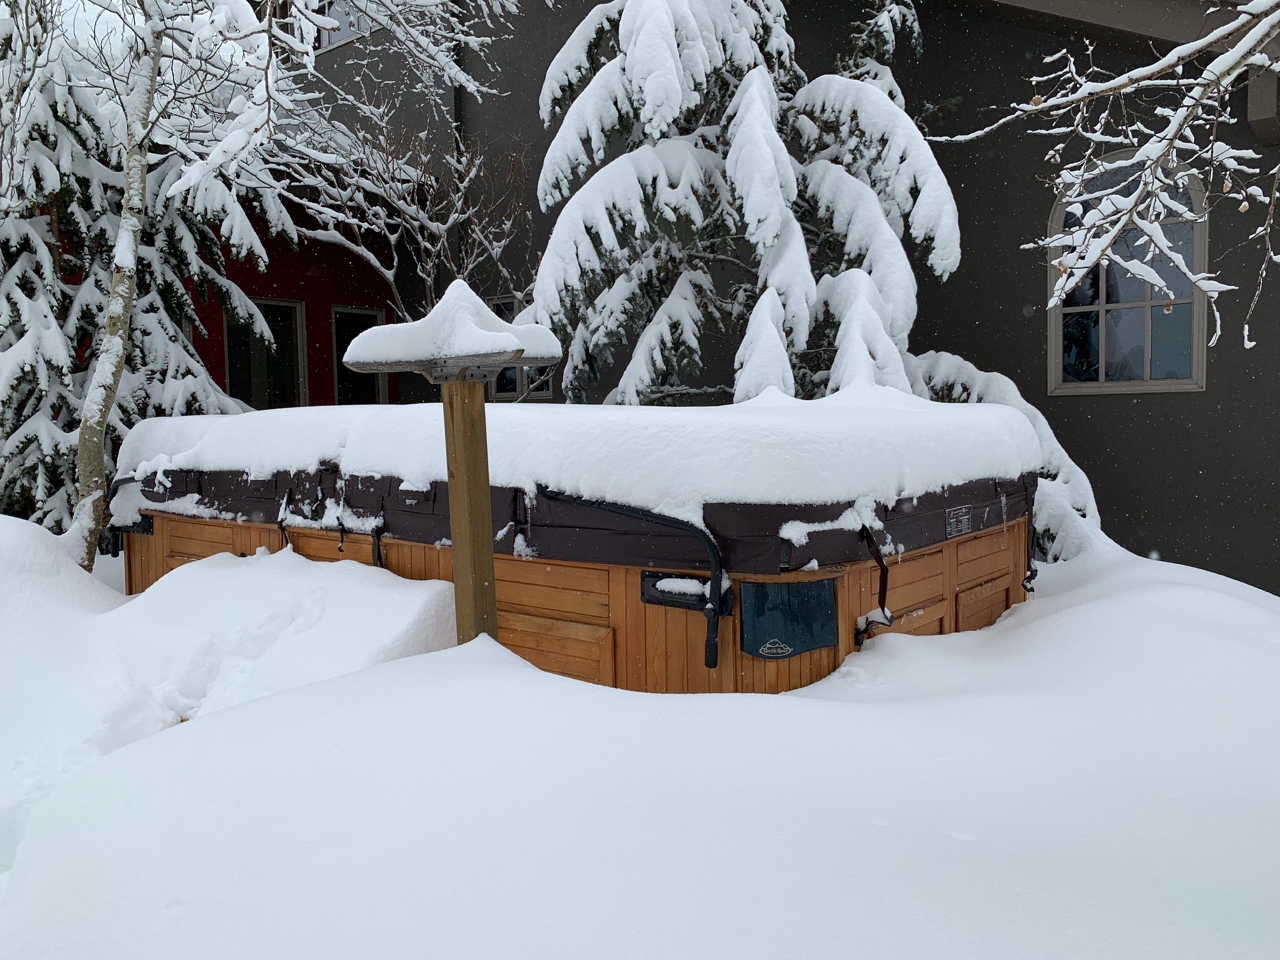 A hot tub under snow